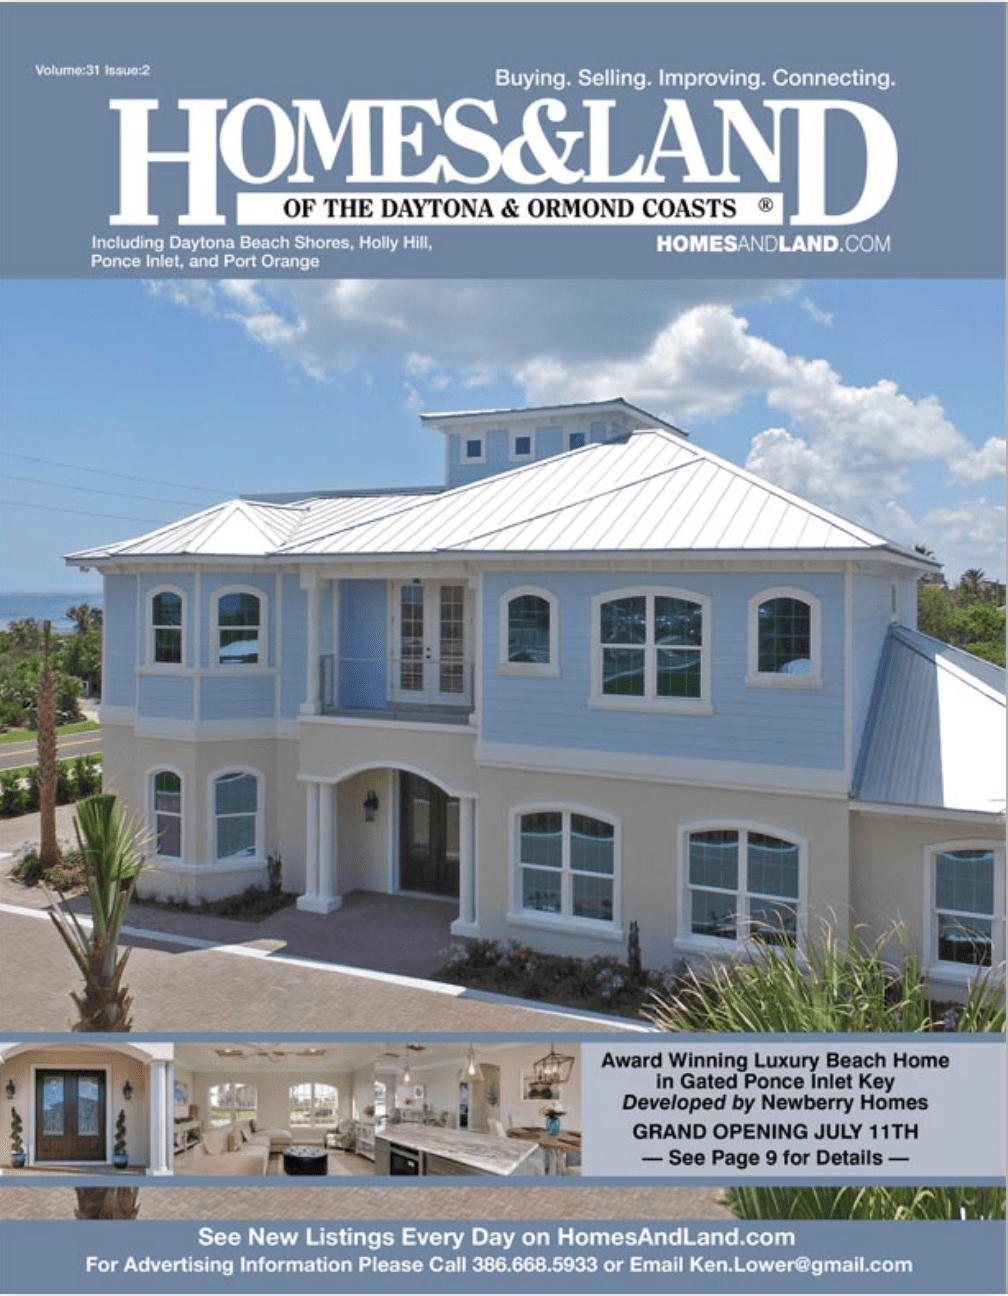 Ponce Inlet Key makes the cover of Homes & Land cover!